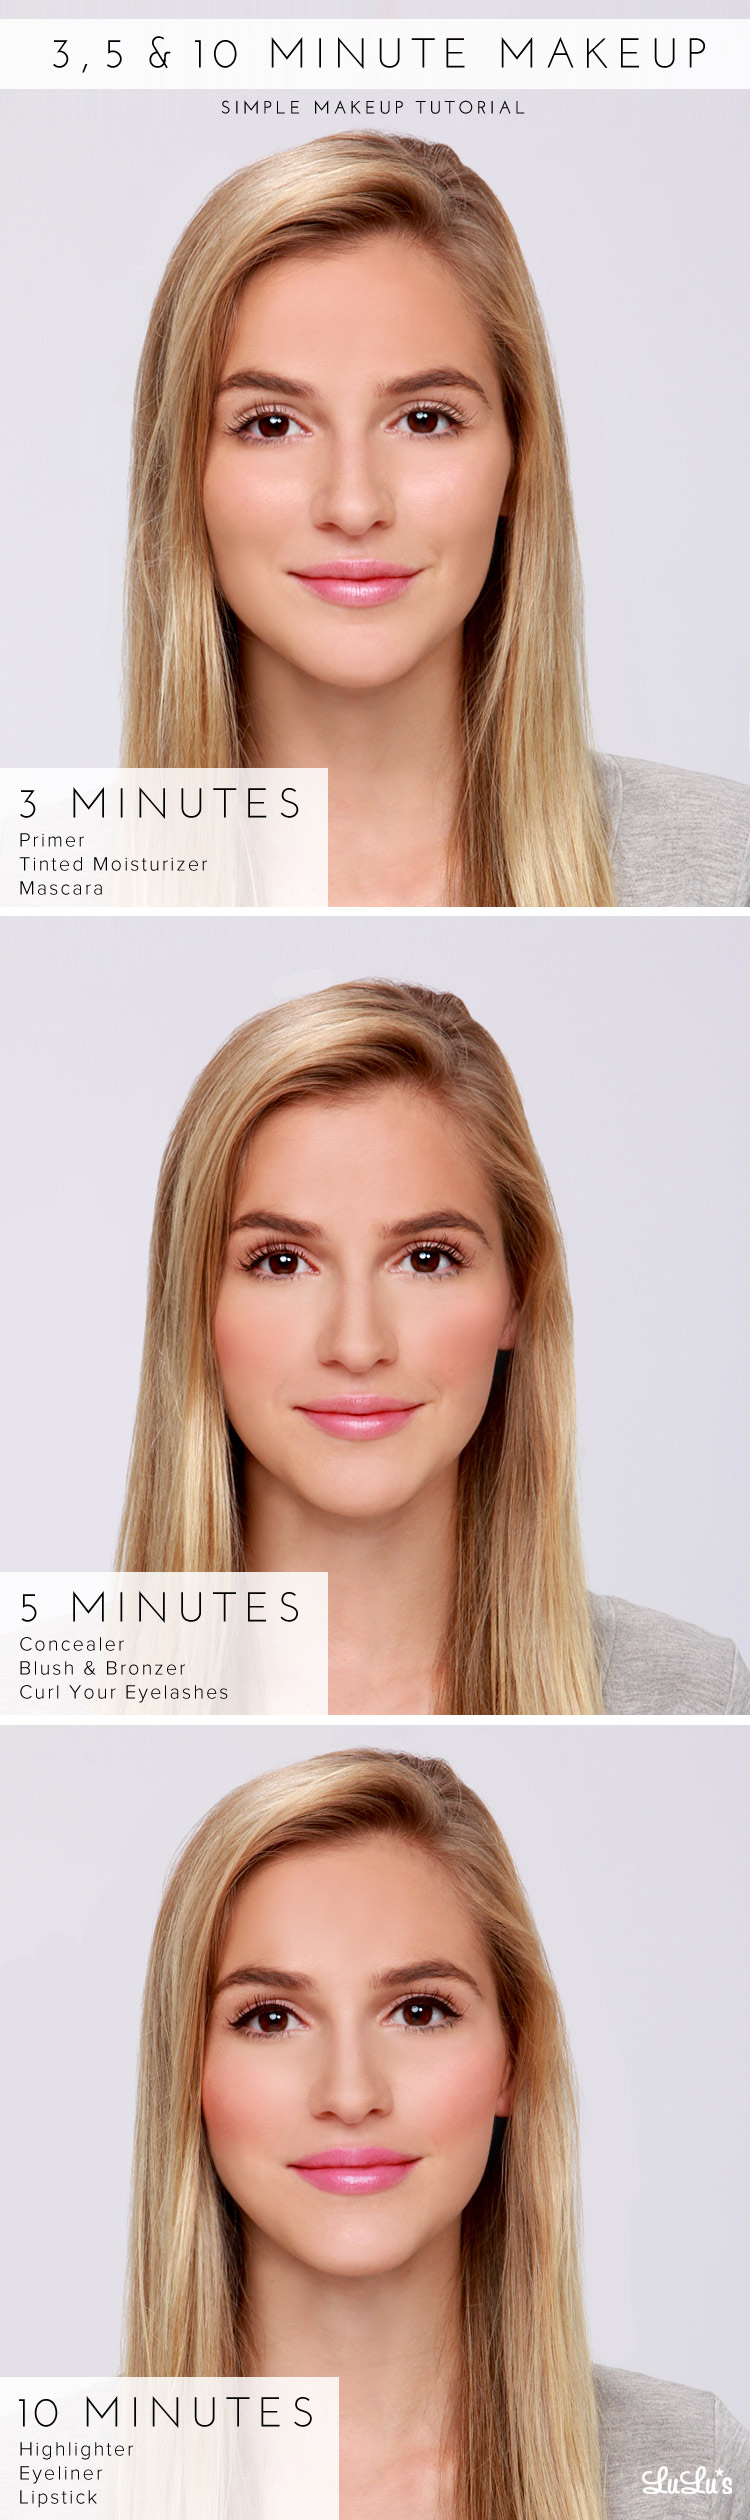 Lulus how to 3 5 10 minute makeup tutorial lulus fashion blog lulus how to 3 5 10 minute makeup tutorial at lulus baditri Gallery